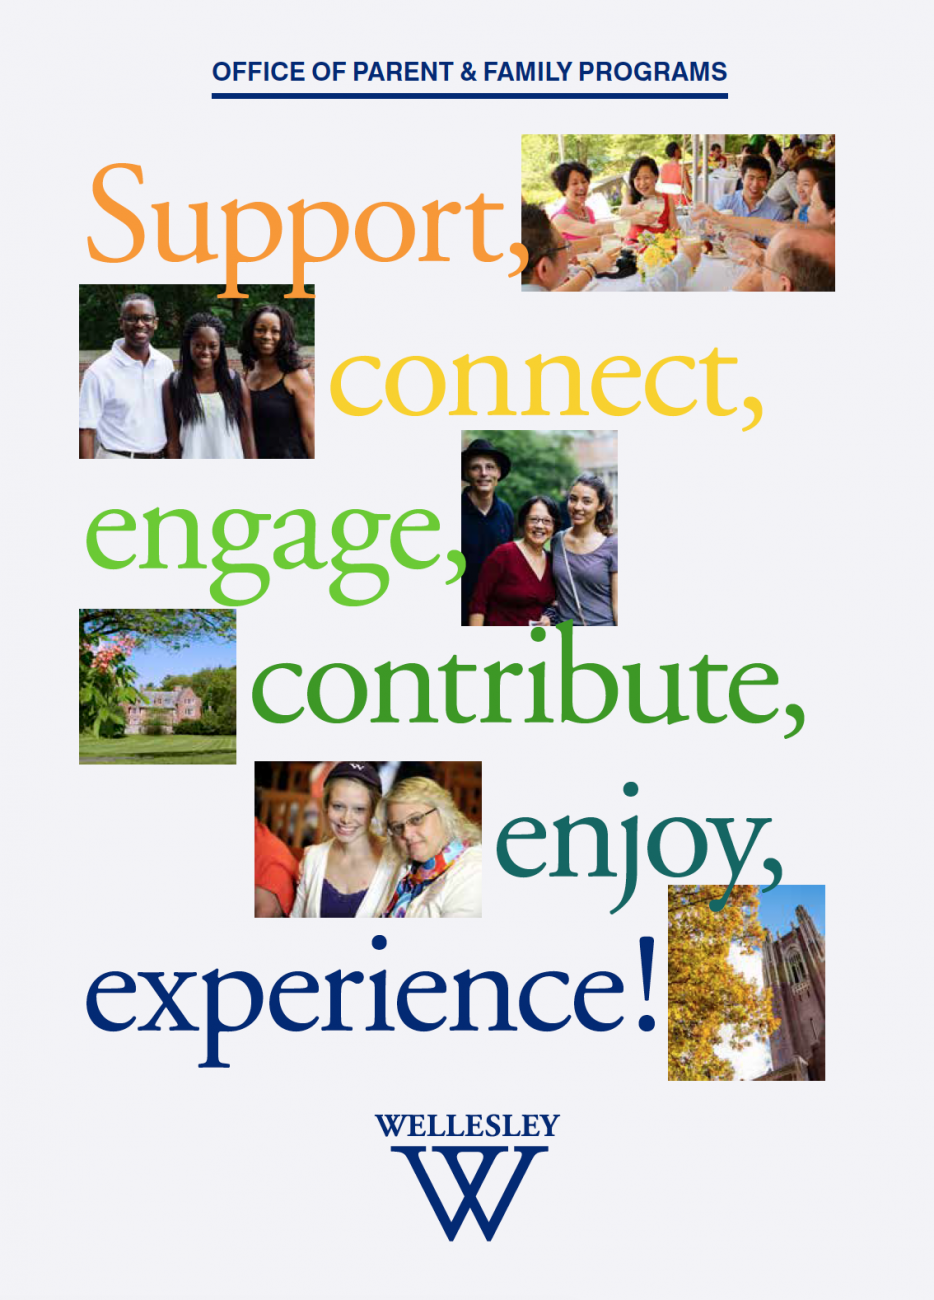 Support, connect, engage, contribute, enjoy, experience!